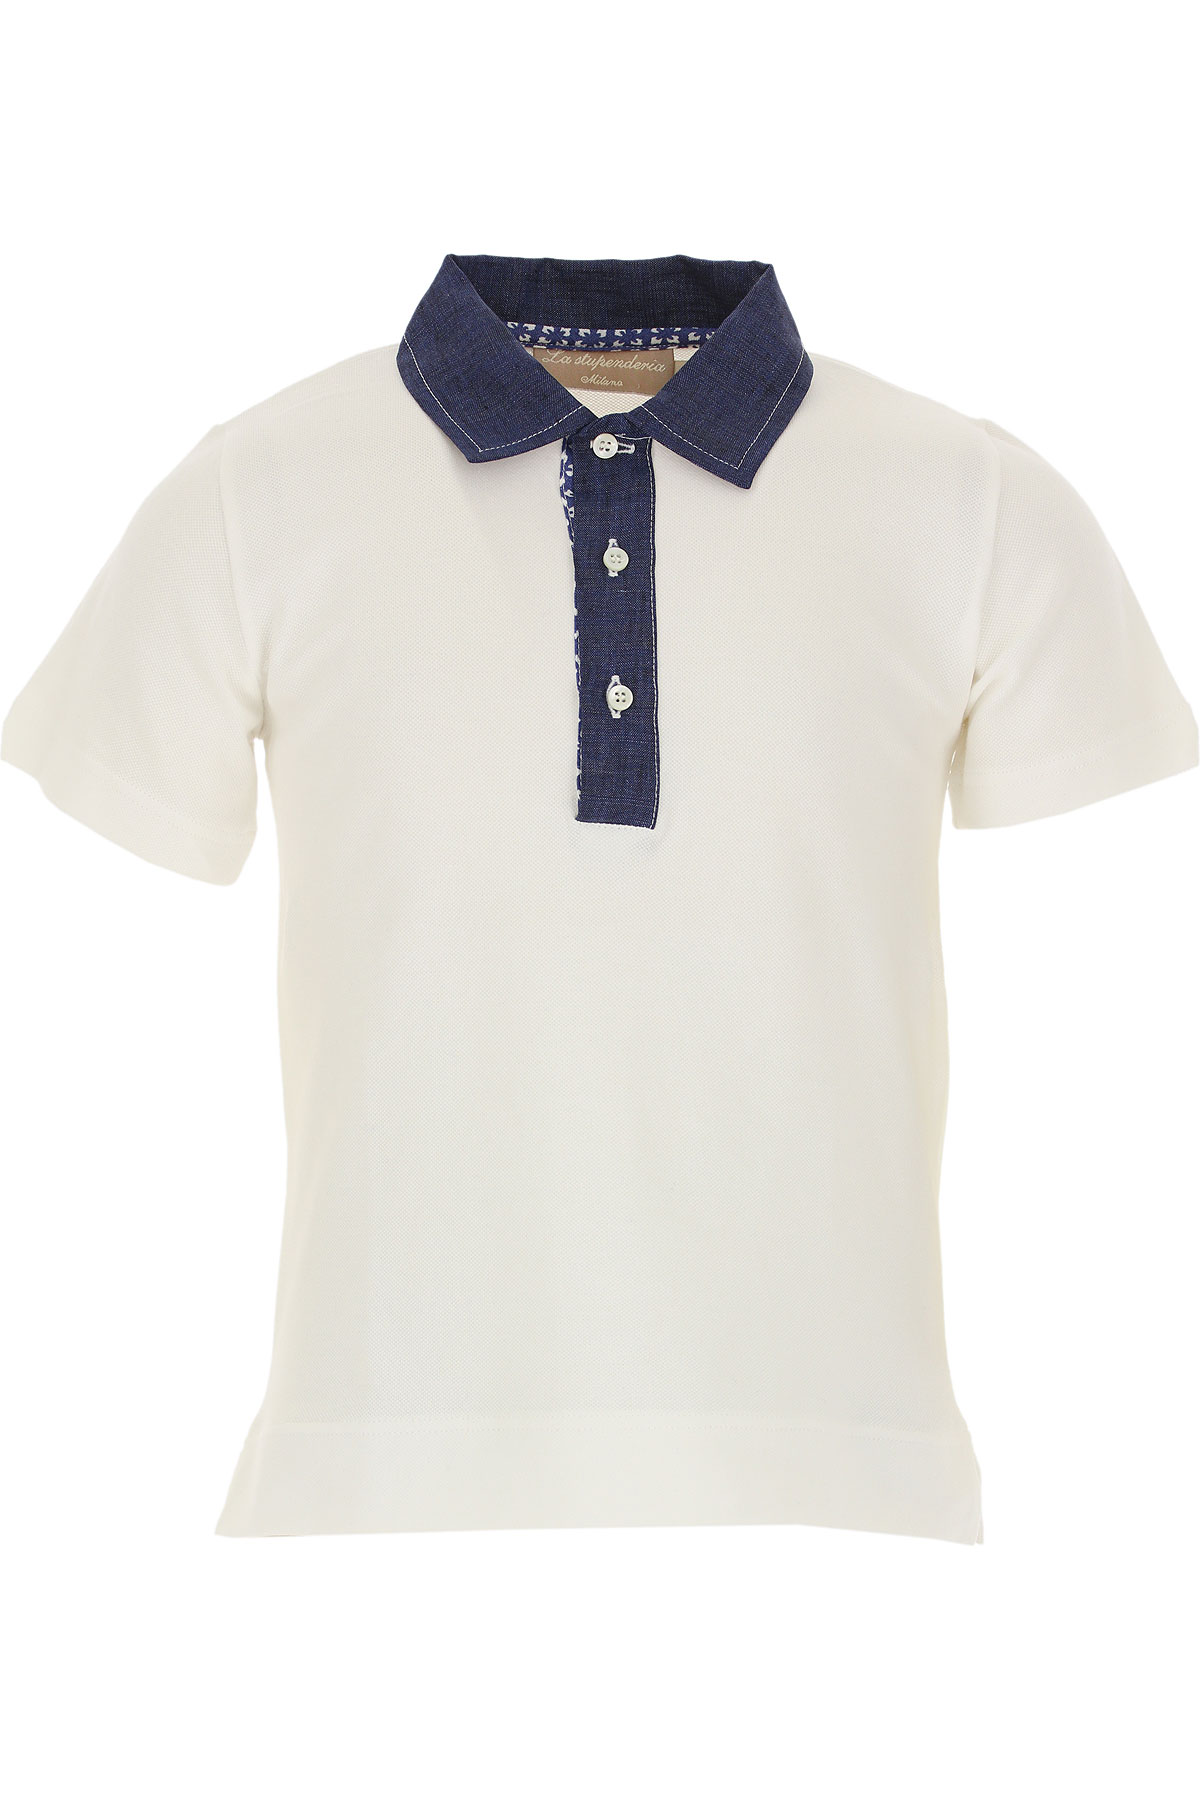 La Stupenderia Kids Polo Shirt for Boys On Sale in Outlet, White, Cotton, 2019, 12Y 3Y 4Y